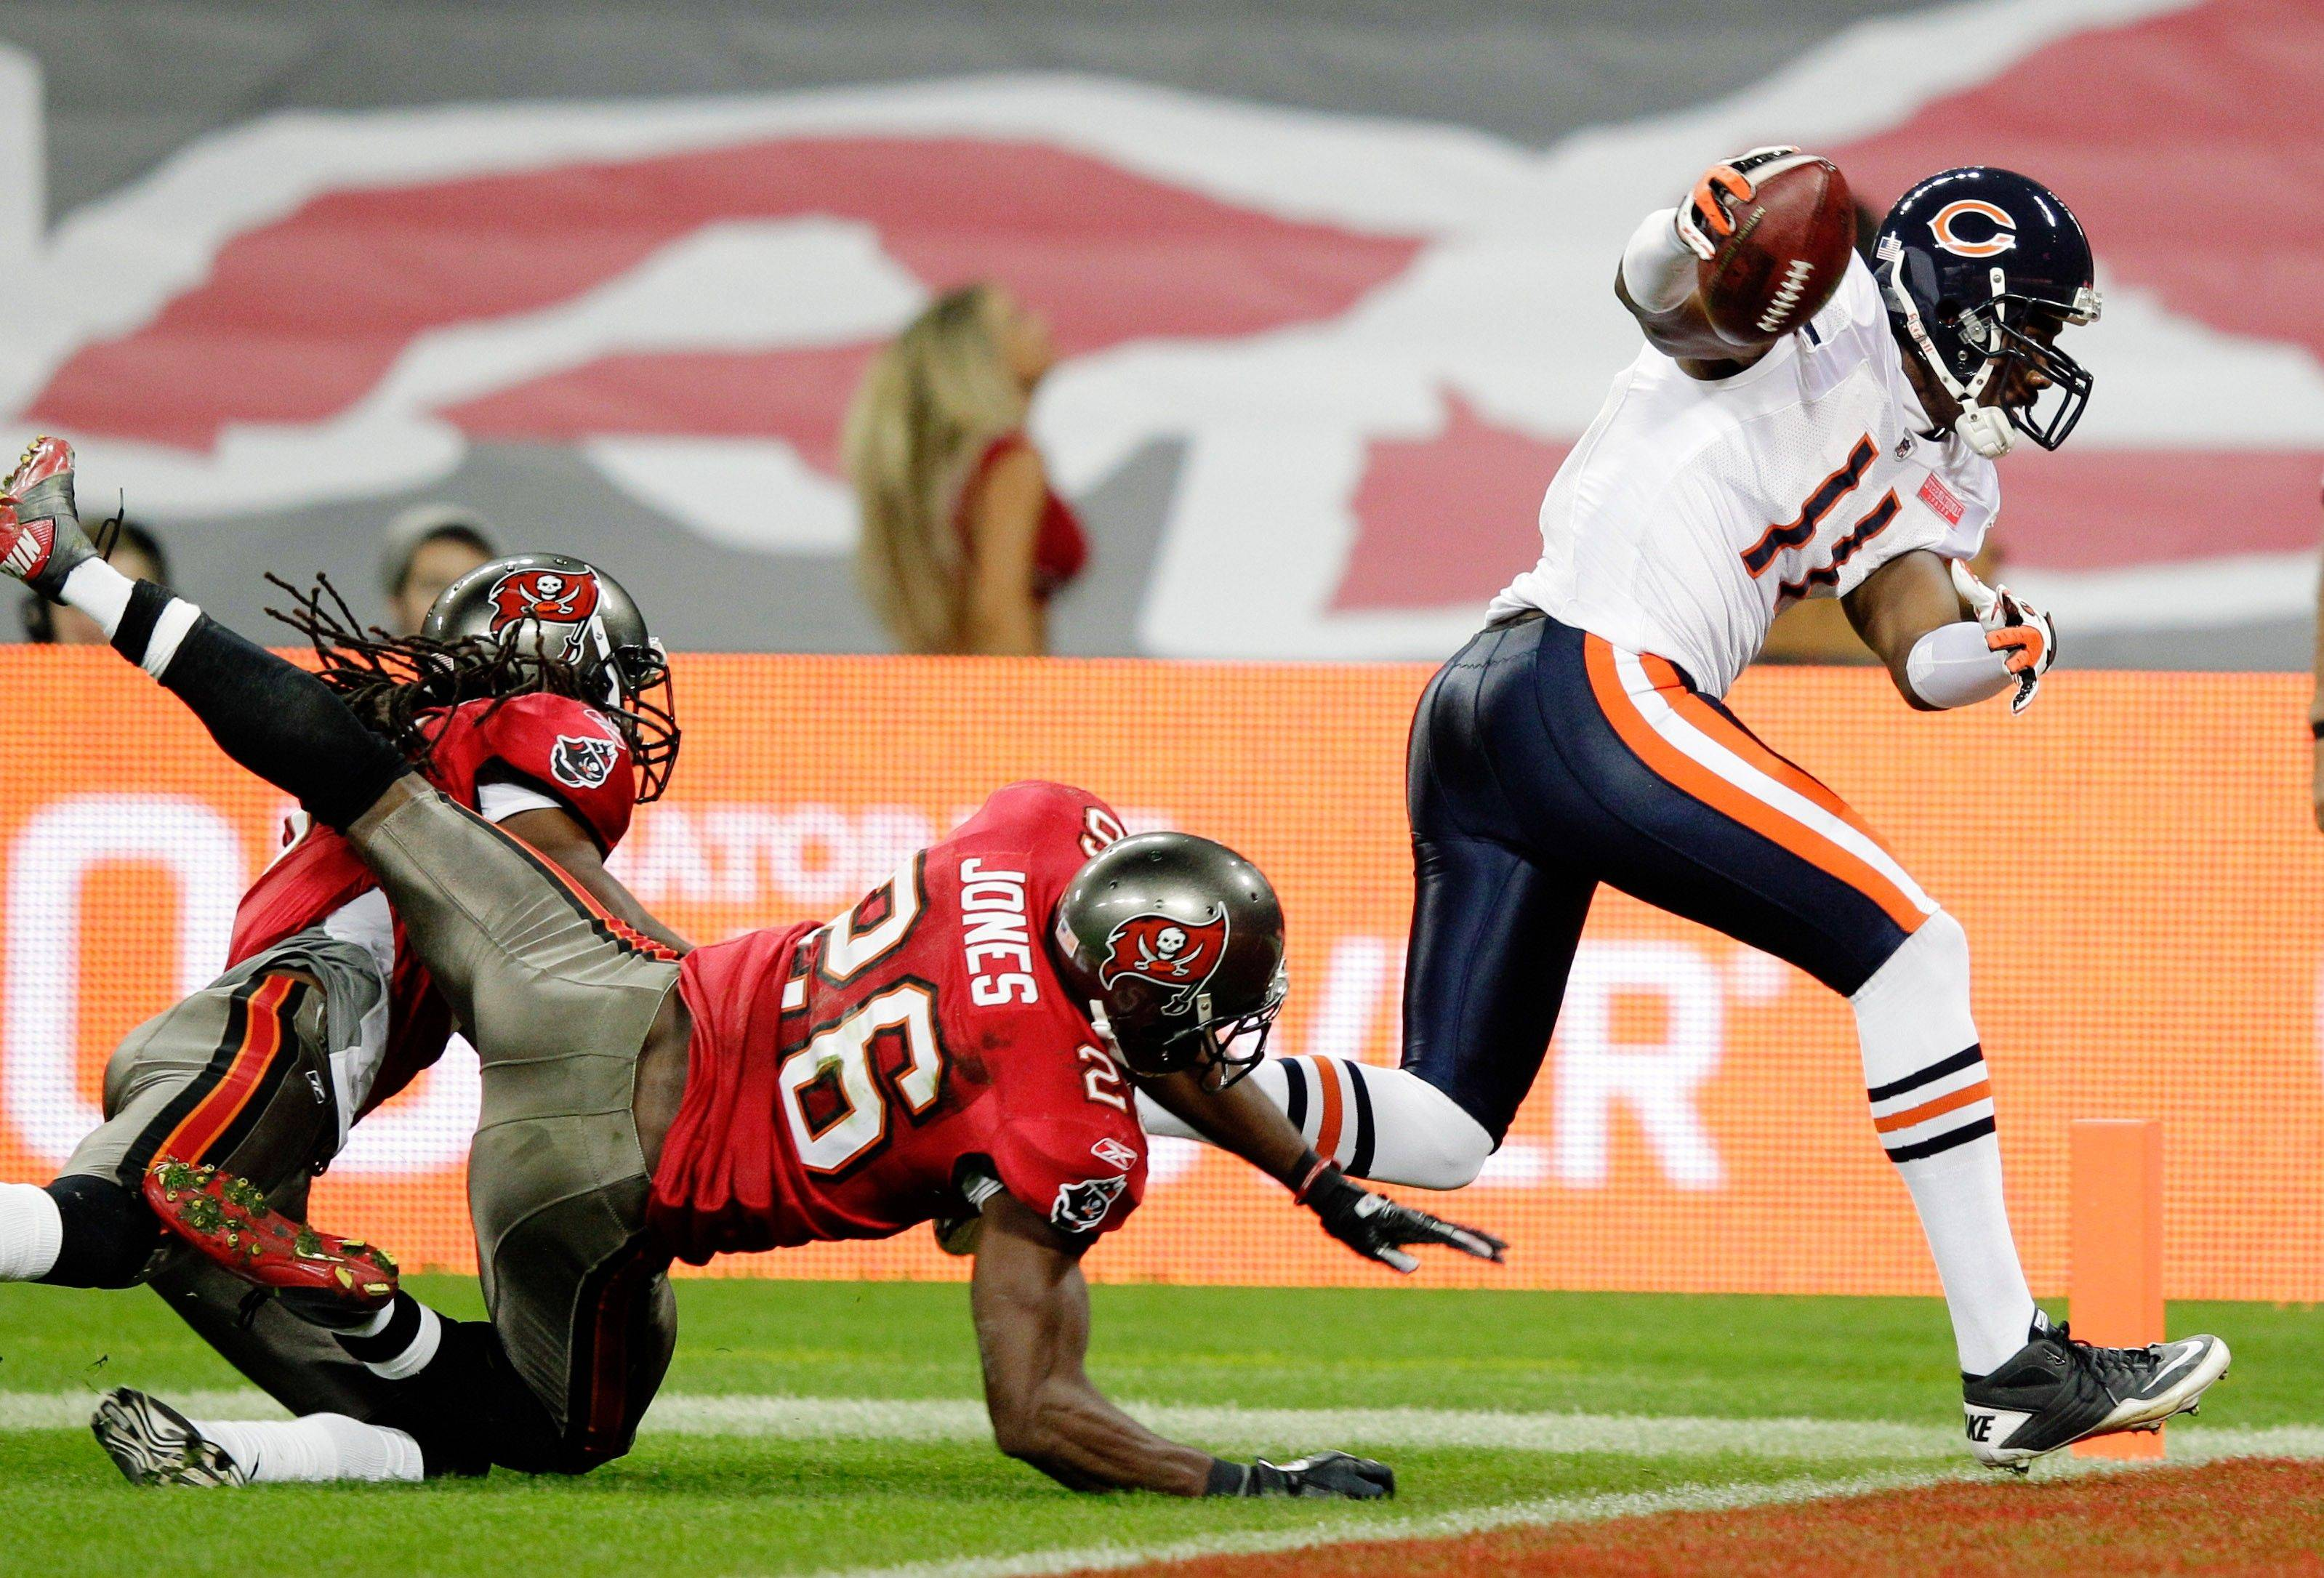 Tampa Bay Buccaneers safety Sean Jones misses a tackle on Chicago Bears wide receiver Roy Williams as he scores on a 25-yard touchdown pass during the first half.